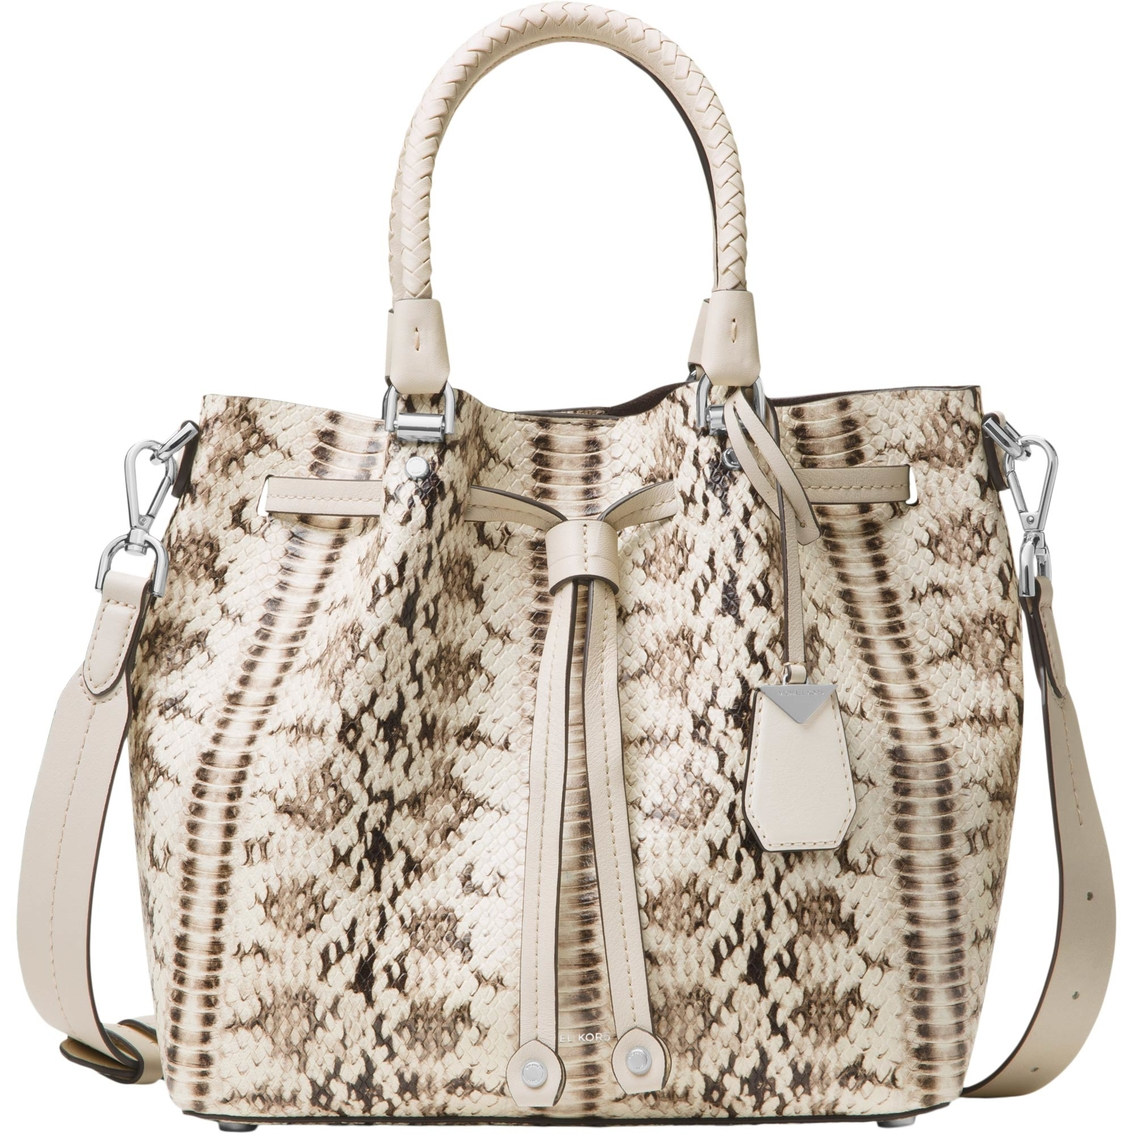 de6673e74246 Michael Kors Blakely Medium Bucket Bag